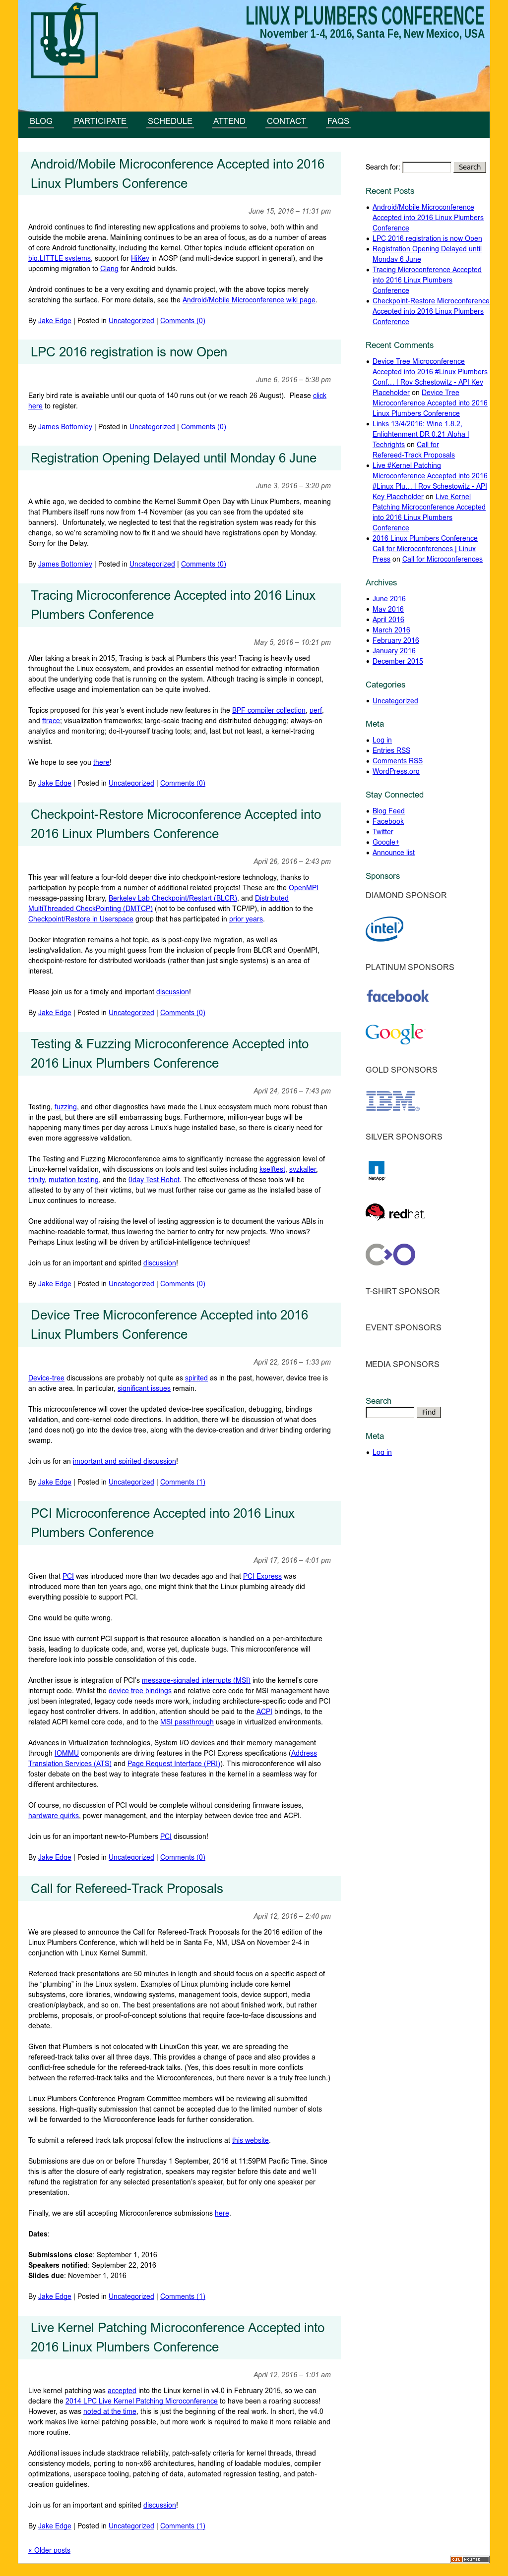 Linux Plumbers Conference Competitors, Revenue and Employees